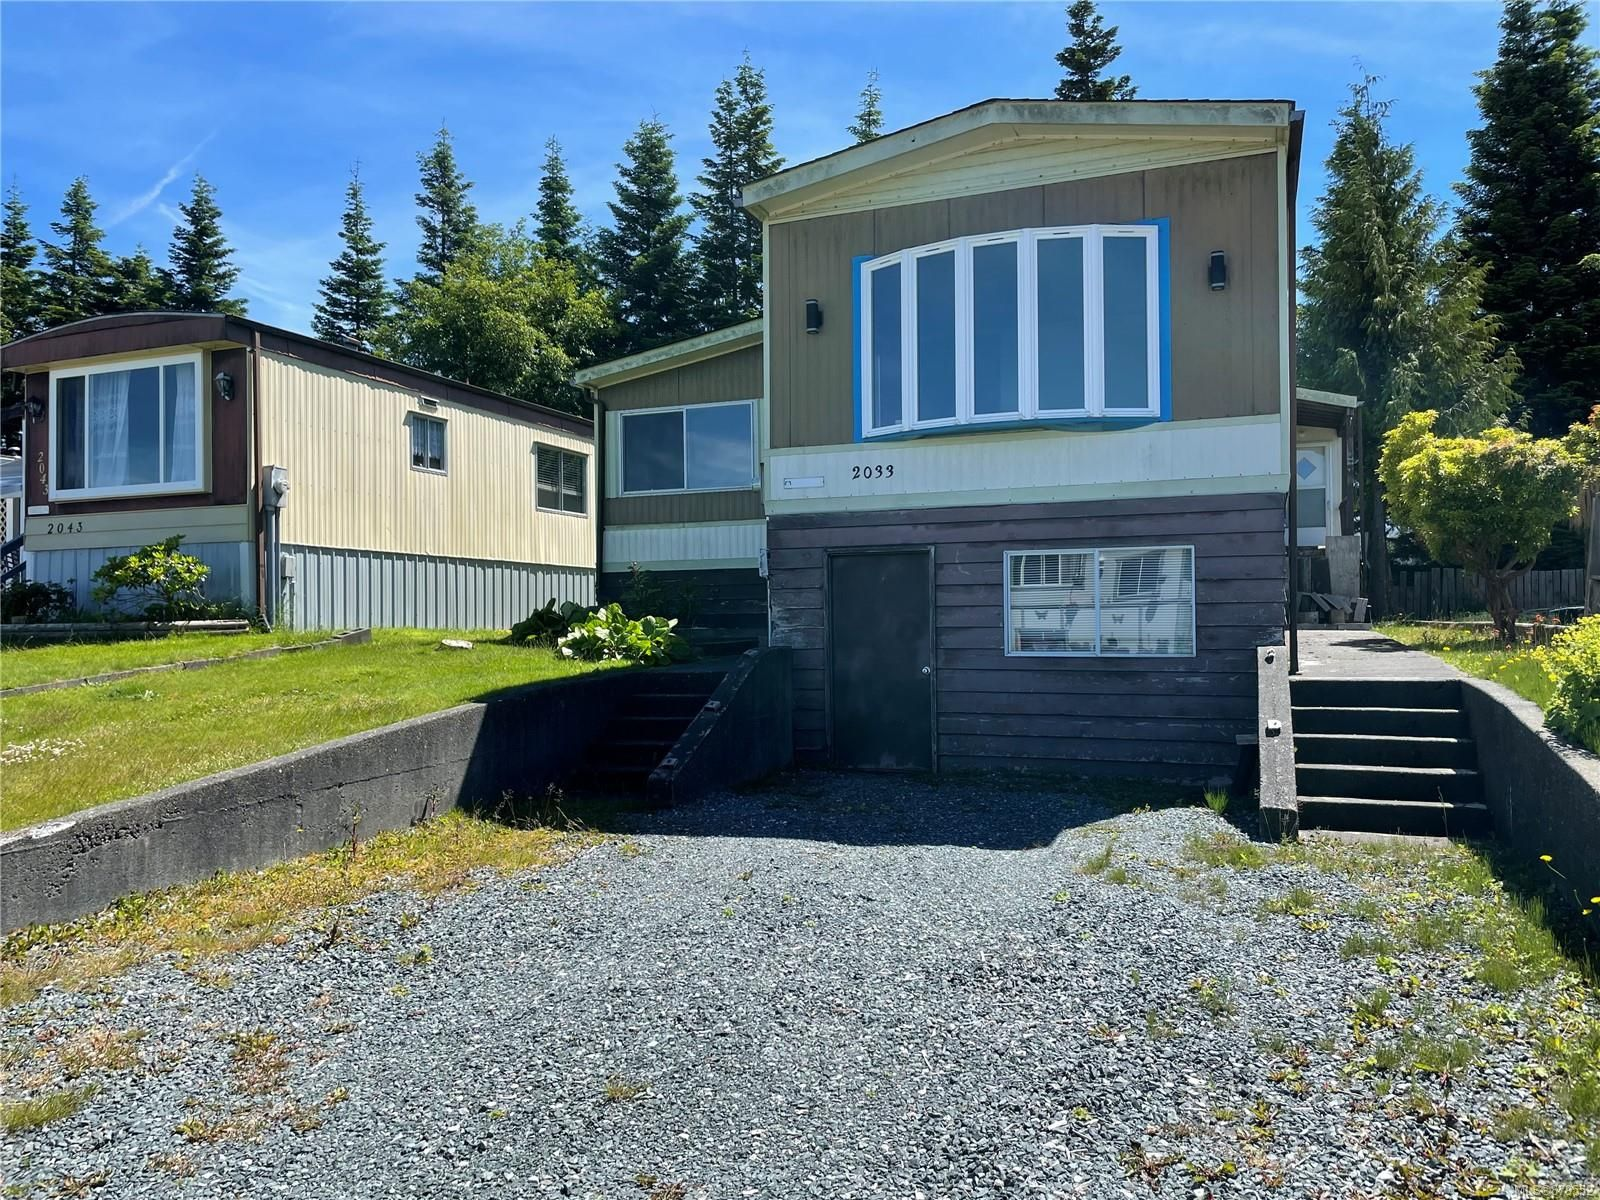 Main Photo: 2033 Chelan Cres in : NI Port McNeill Manufactured Home for sale (North Island)  : MLS®# 879552